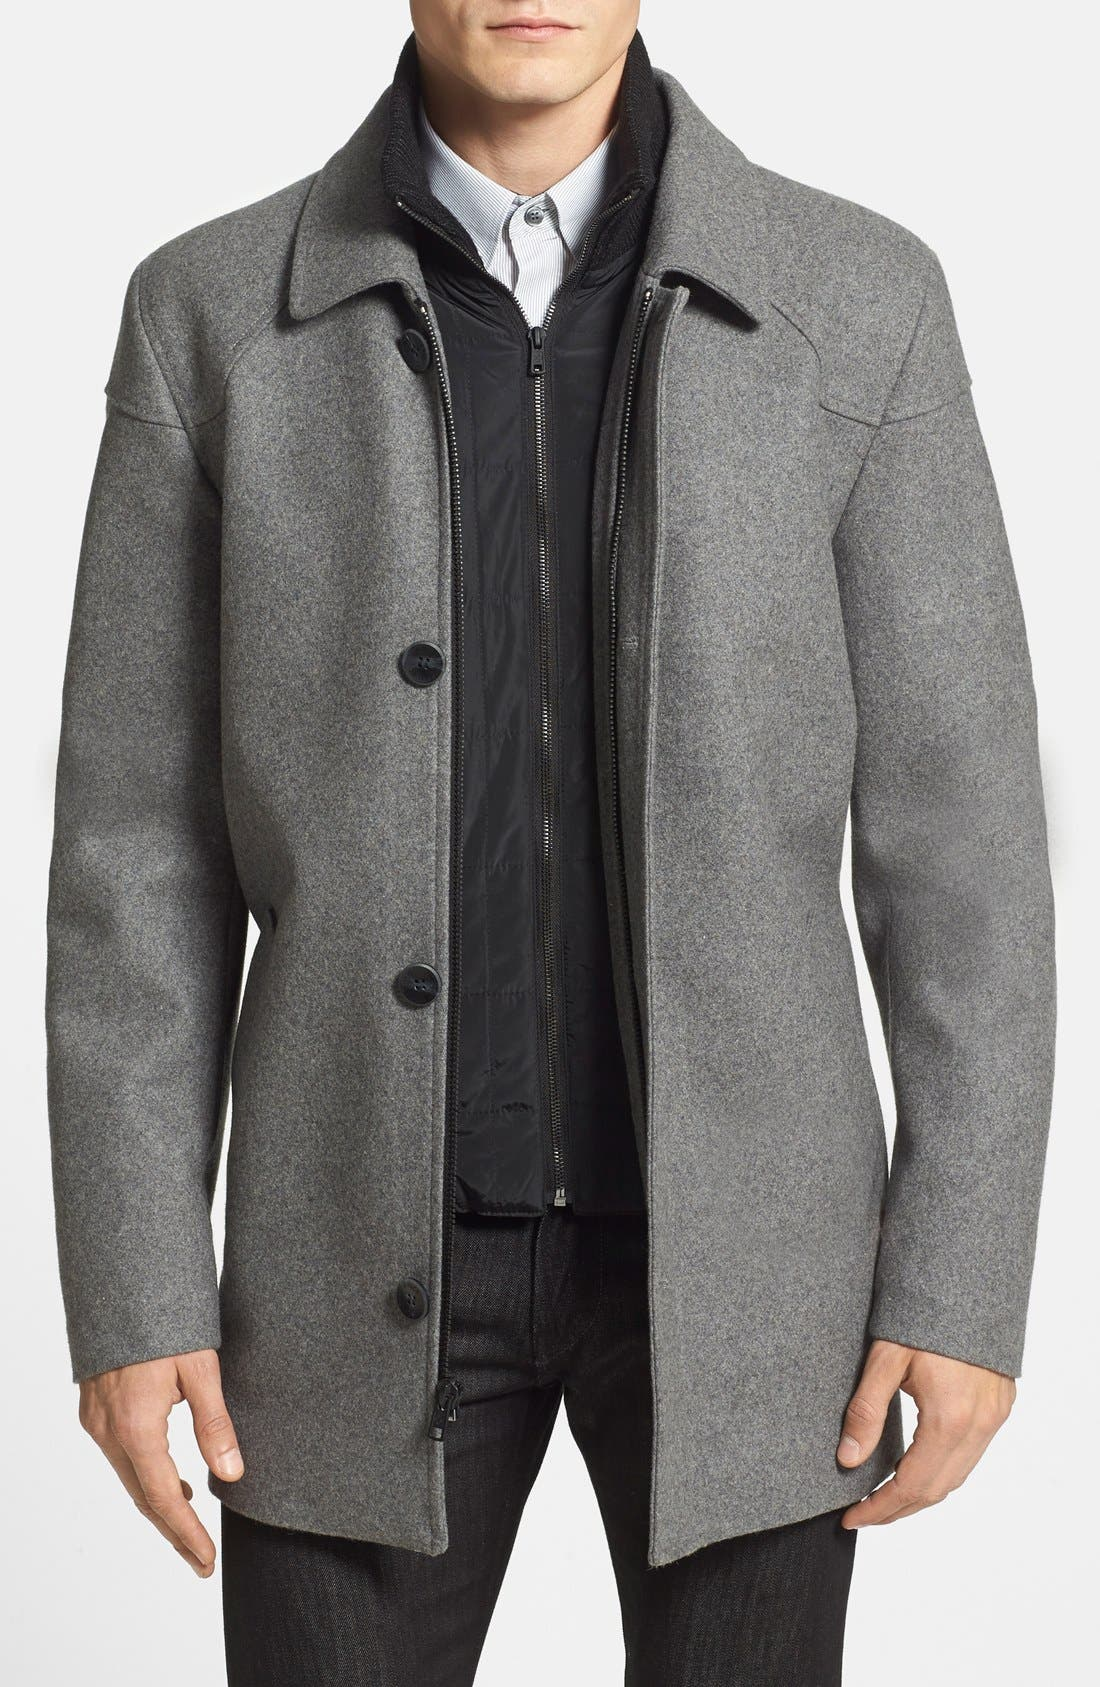 VINCE CAMUTO Melton Car Coat with Removable Bib, Main, color, HEATHER GREY